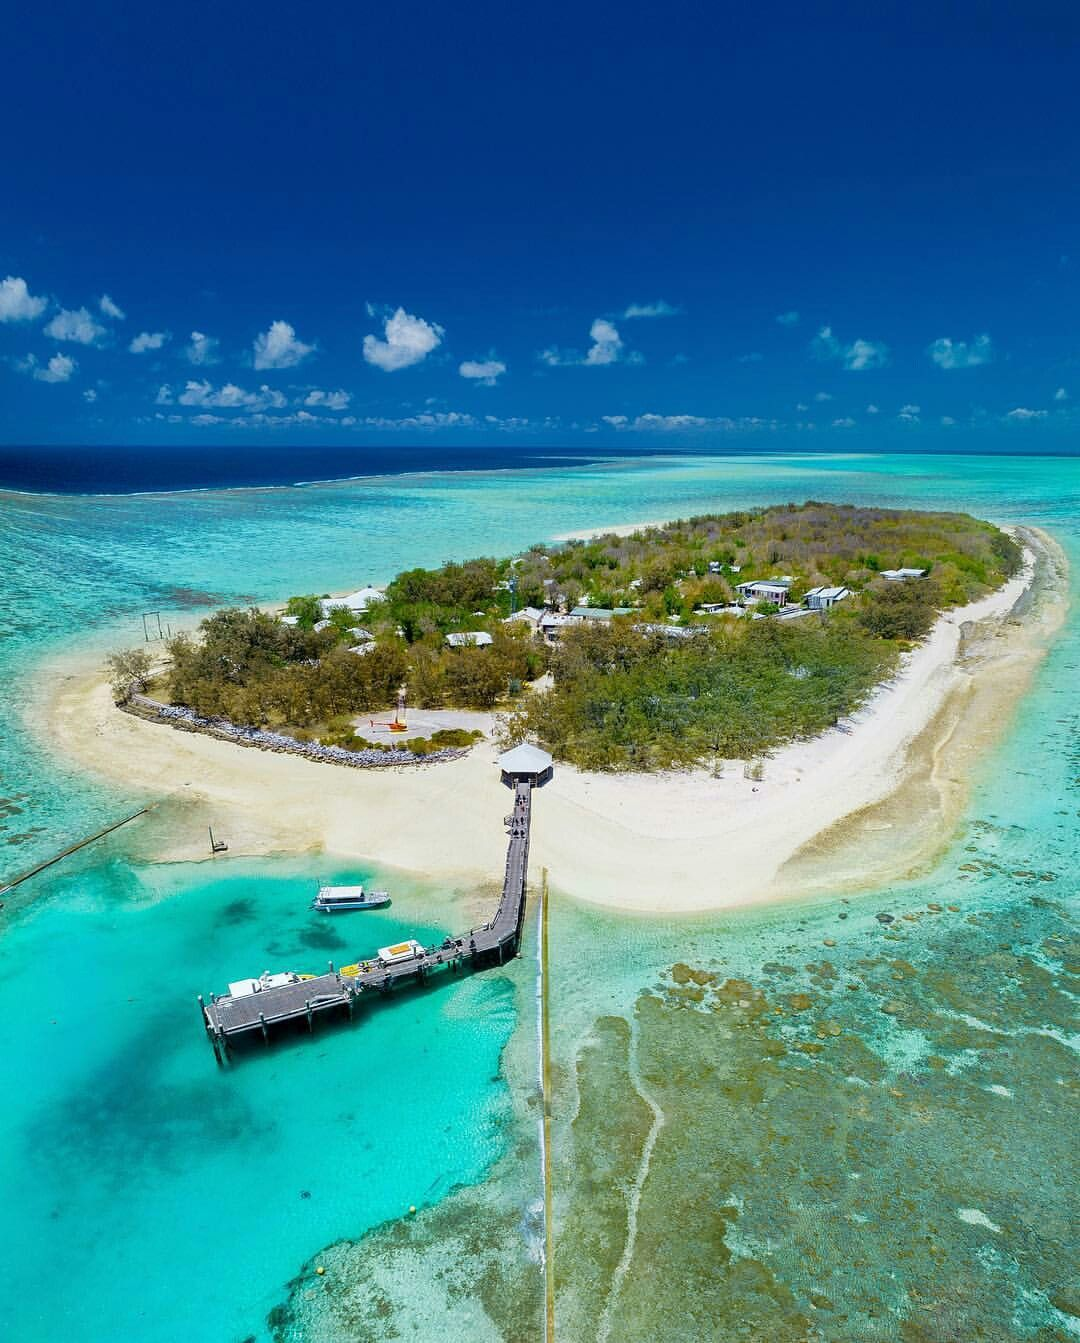 Beach Island: Heron Island, Great Barrier Reef, Australia In 2019